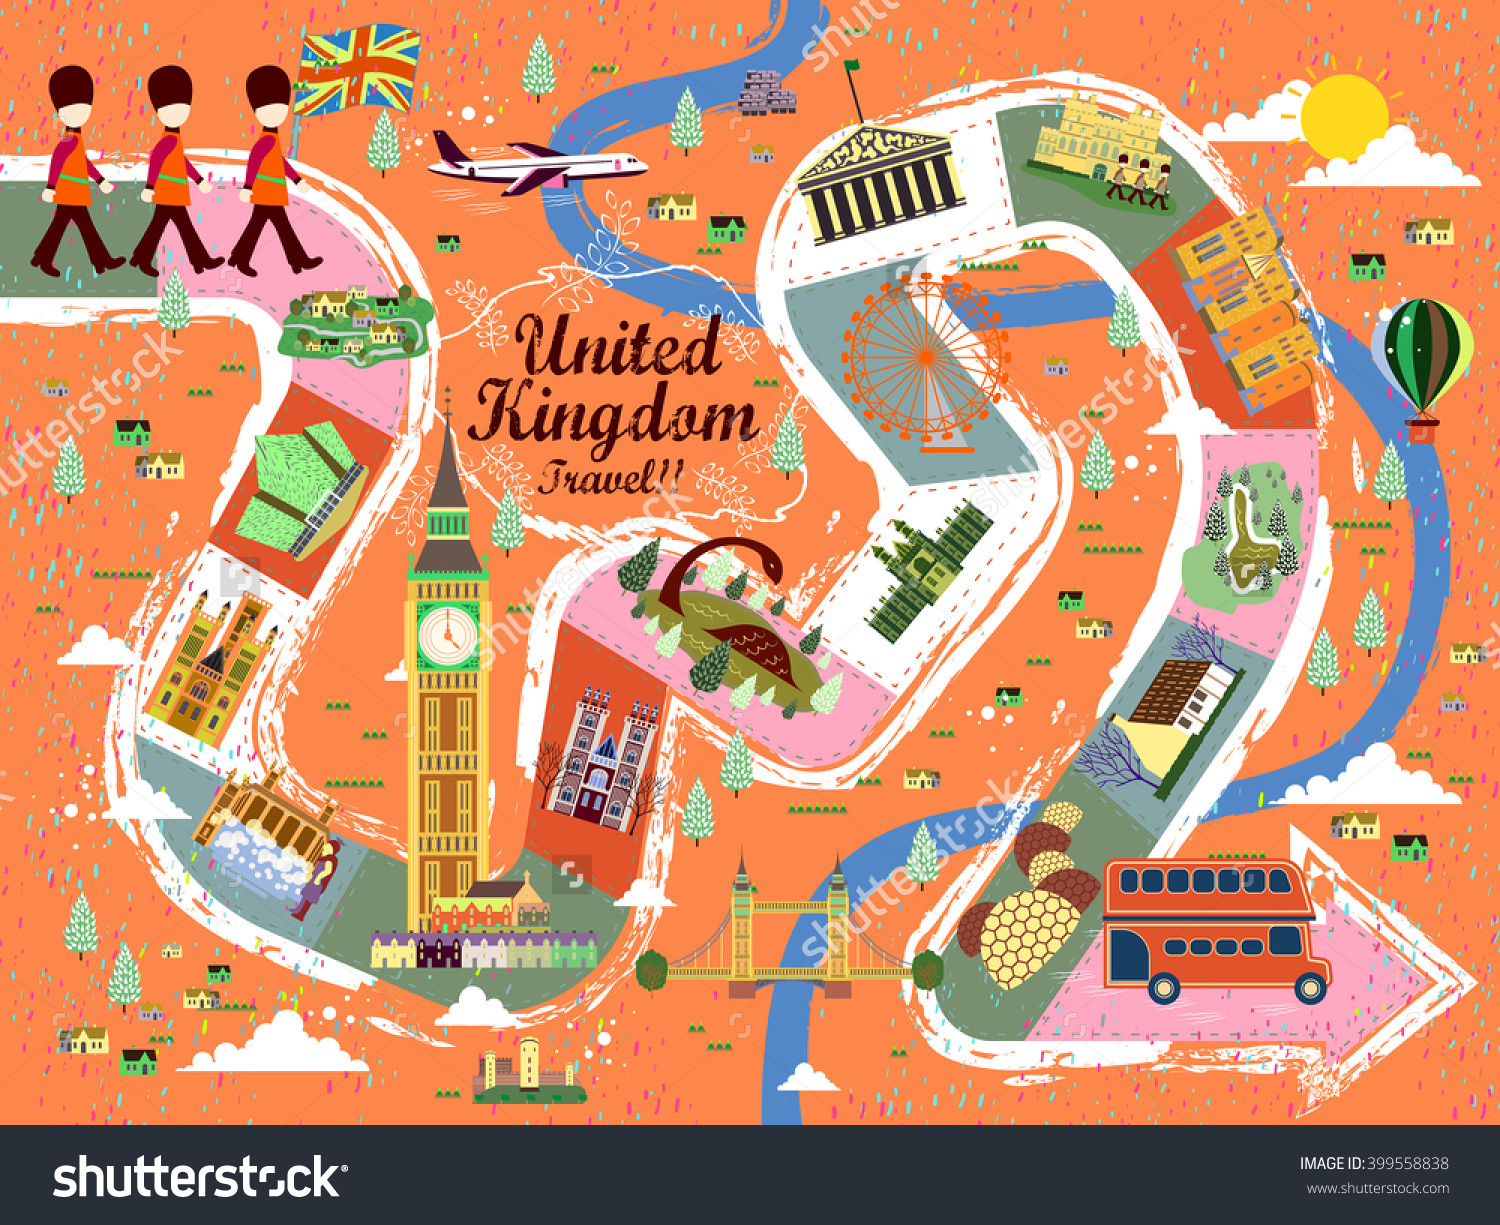 A board poster design - Energetic United Kingdom Travel Board Game Poster Design